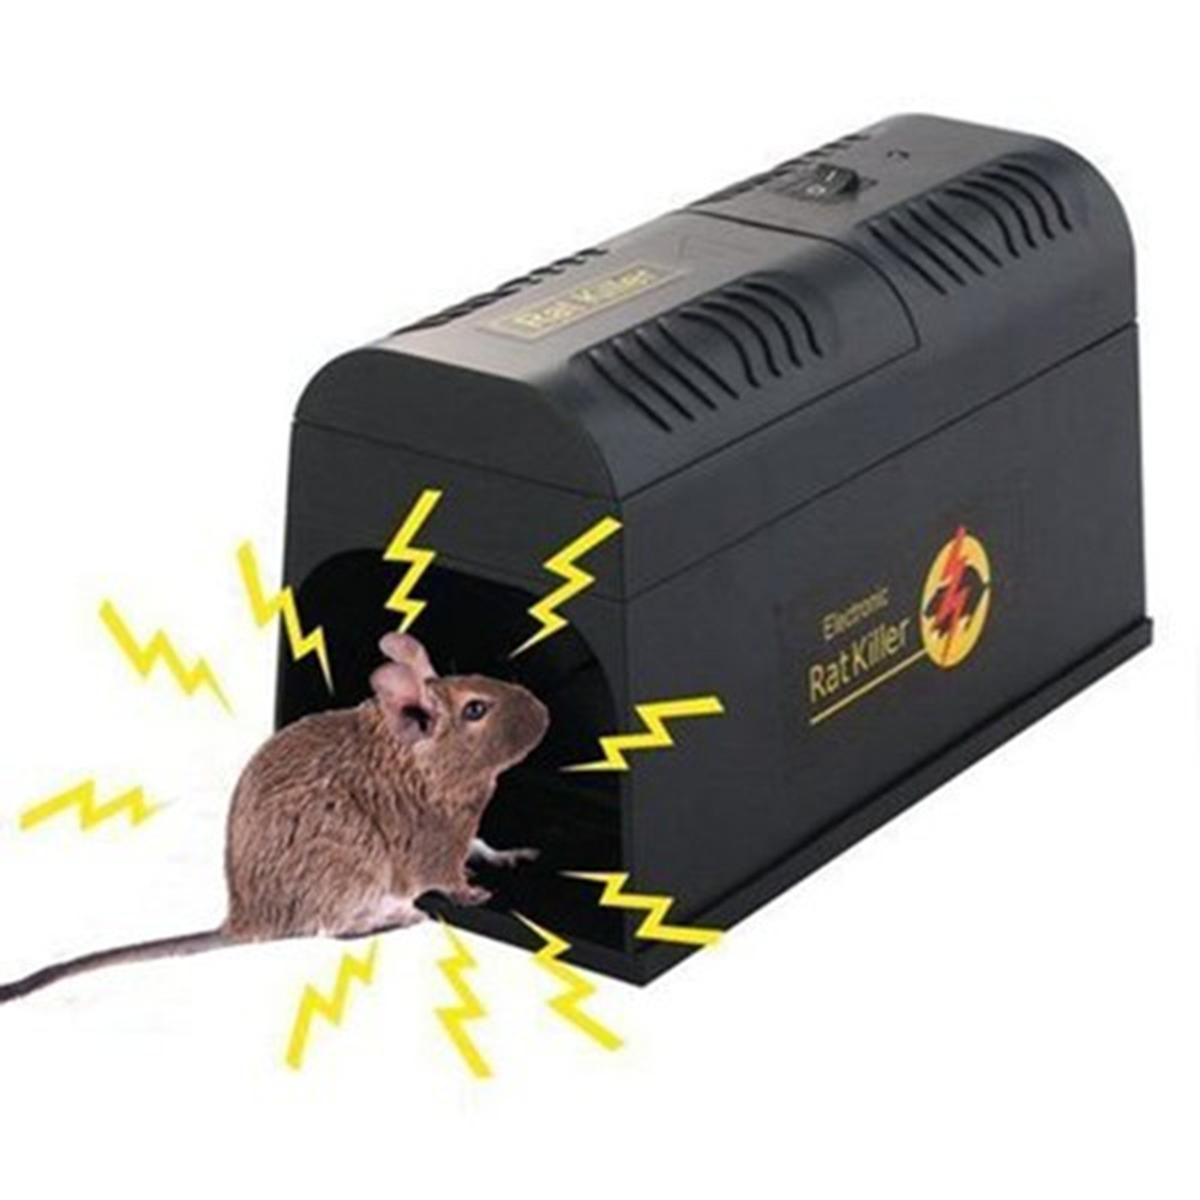 Electric Mouse Rat Trap Mouse Killer Electronic Rodent Mouse Zapper Electrocute Mana Kiore Home Use High Voltage Cheap Sales 50% Pest Control Traps